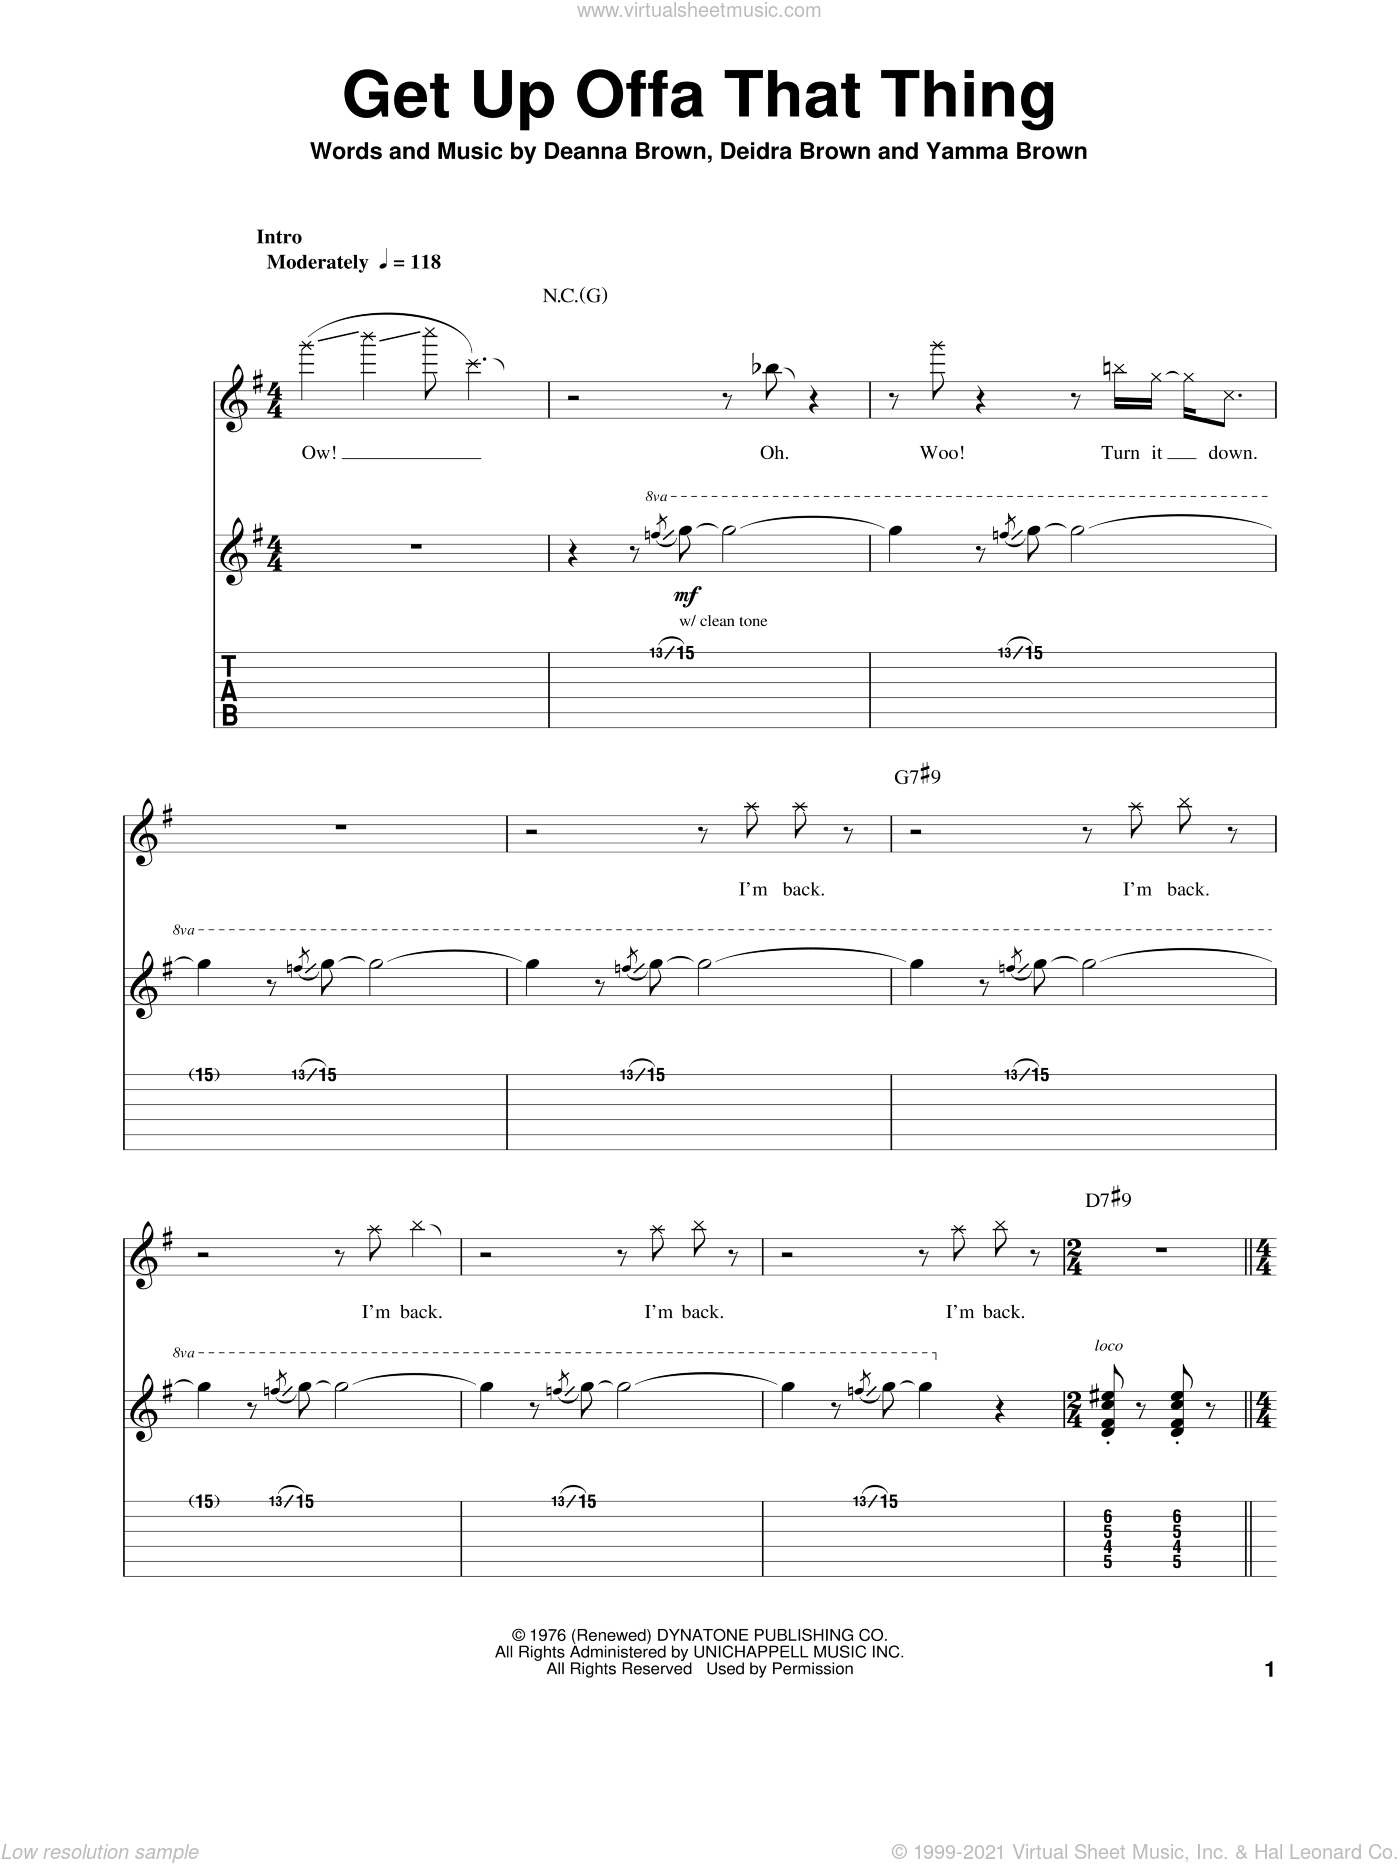 Get Up Offa That Thing sheet music for guitar (tablature, play-along) by James Brown, Deanna Brown, Deidra Brown and Yamma Brown, intermediate skill level